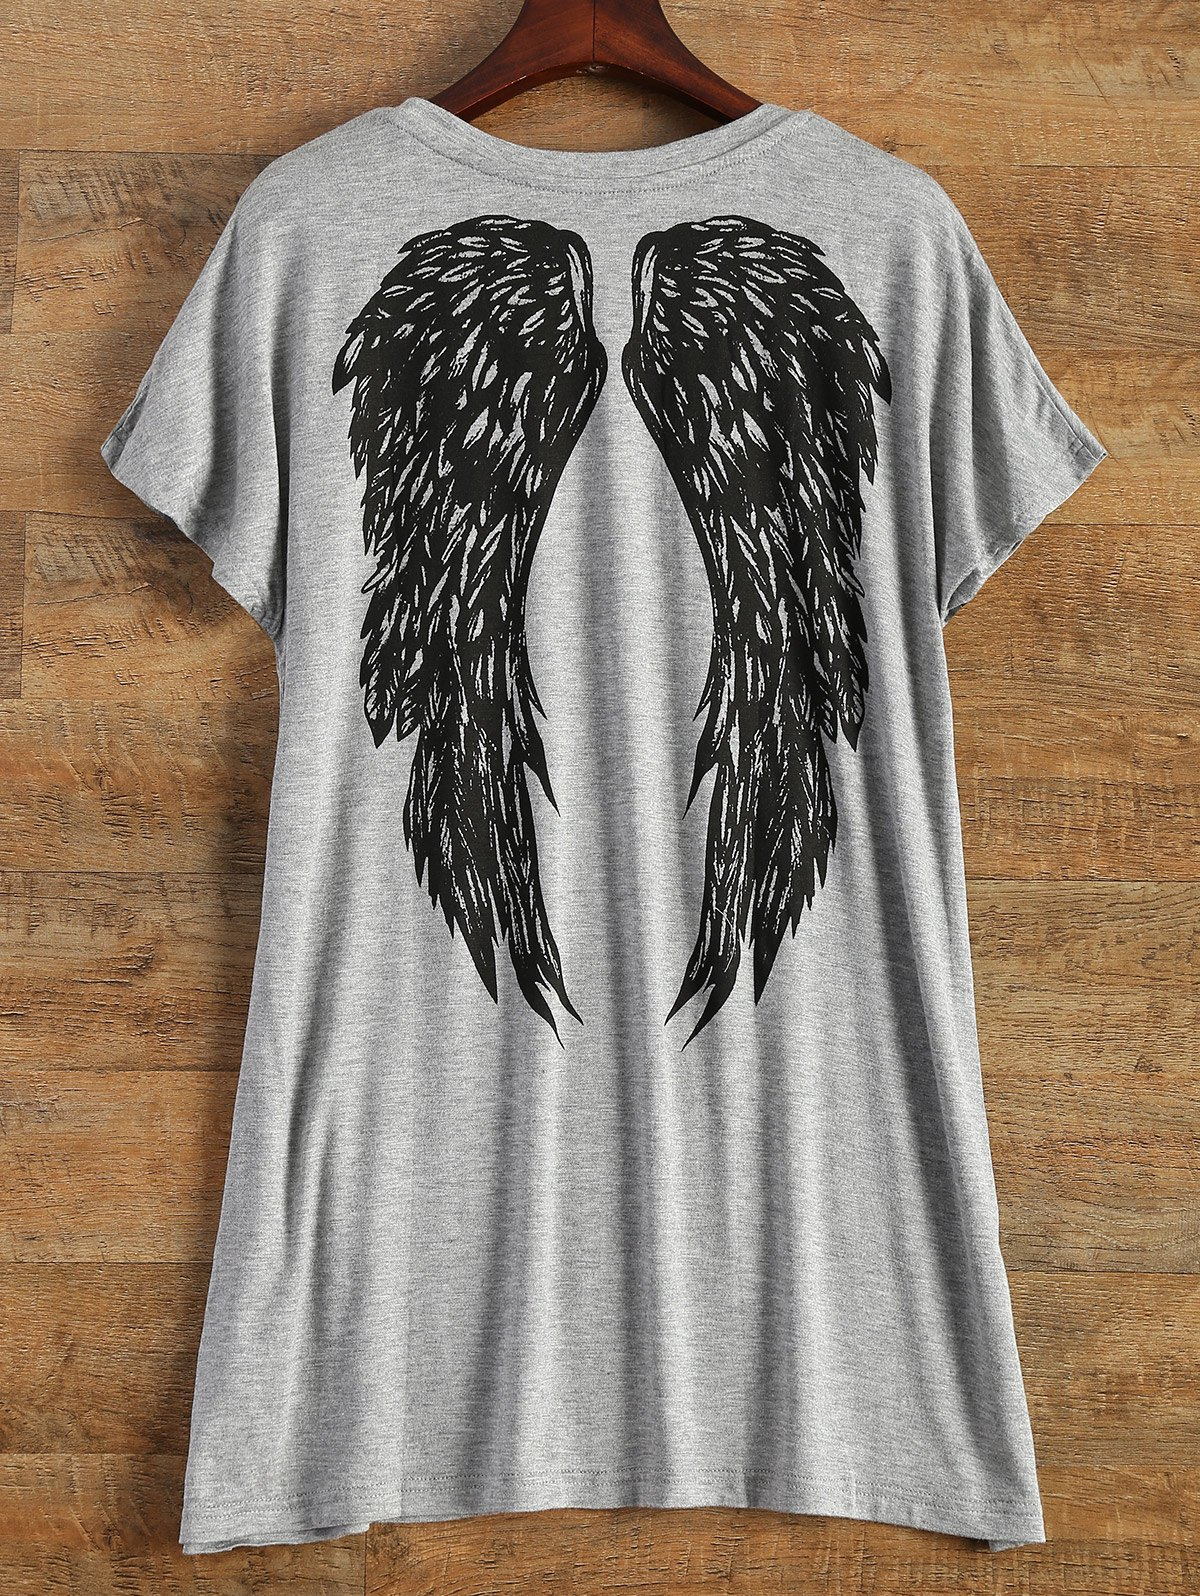 Chic Short Sleeve Logo and Wing Print T-Shirt